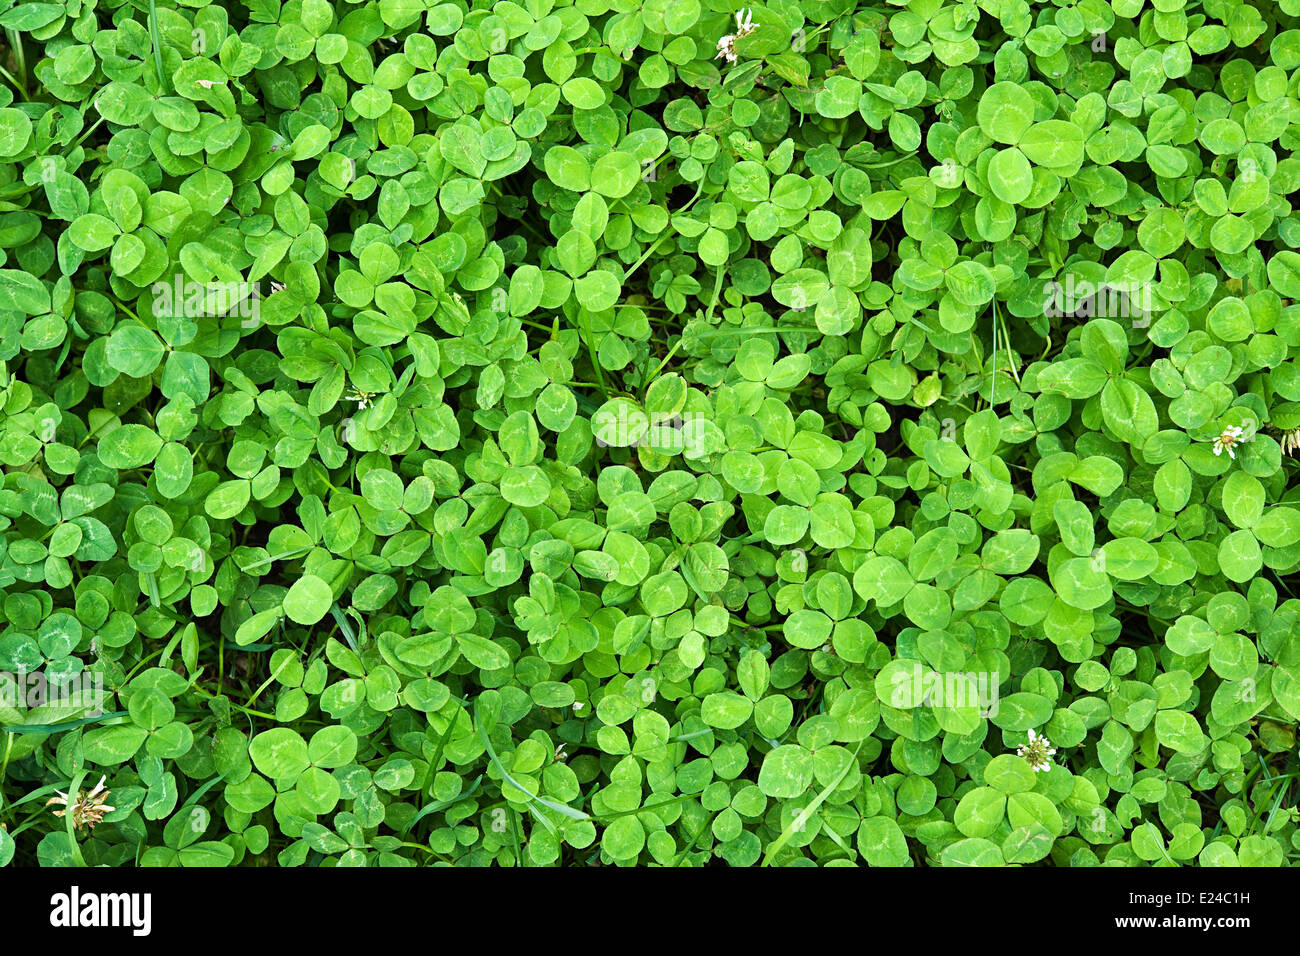 Background of fresh green clover leaves - Stock Image